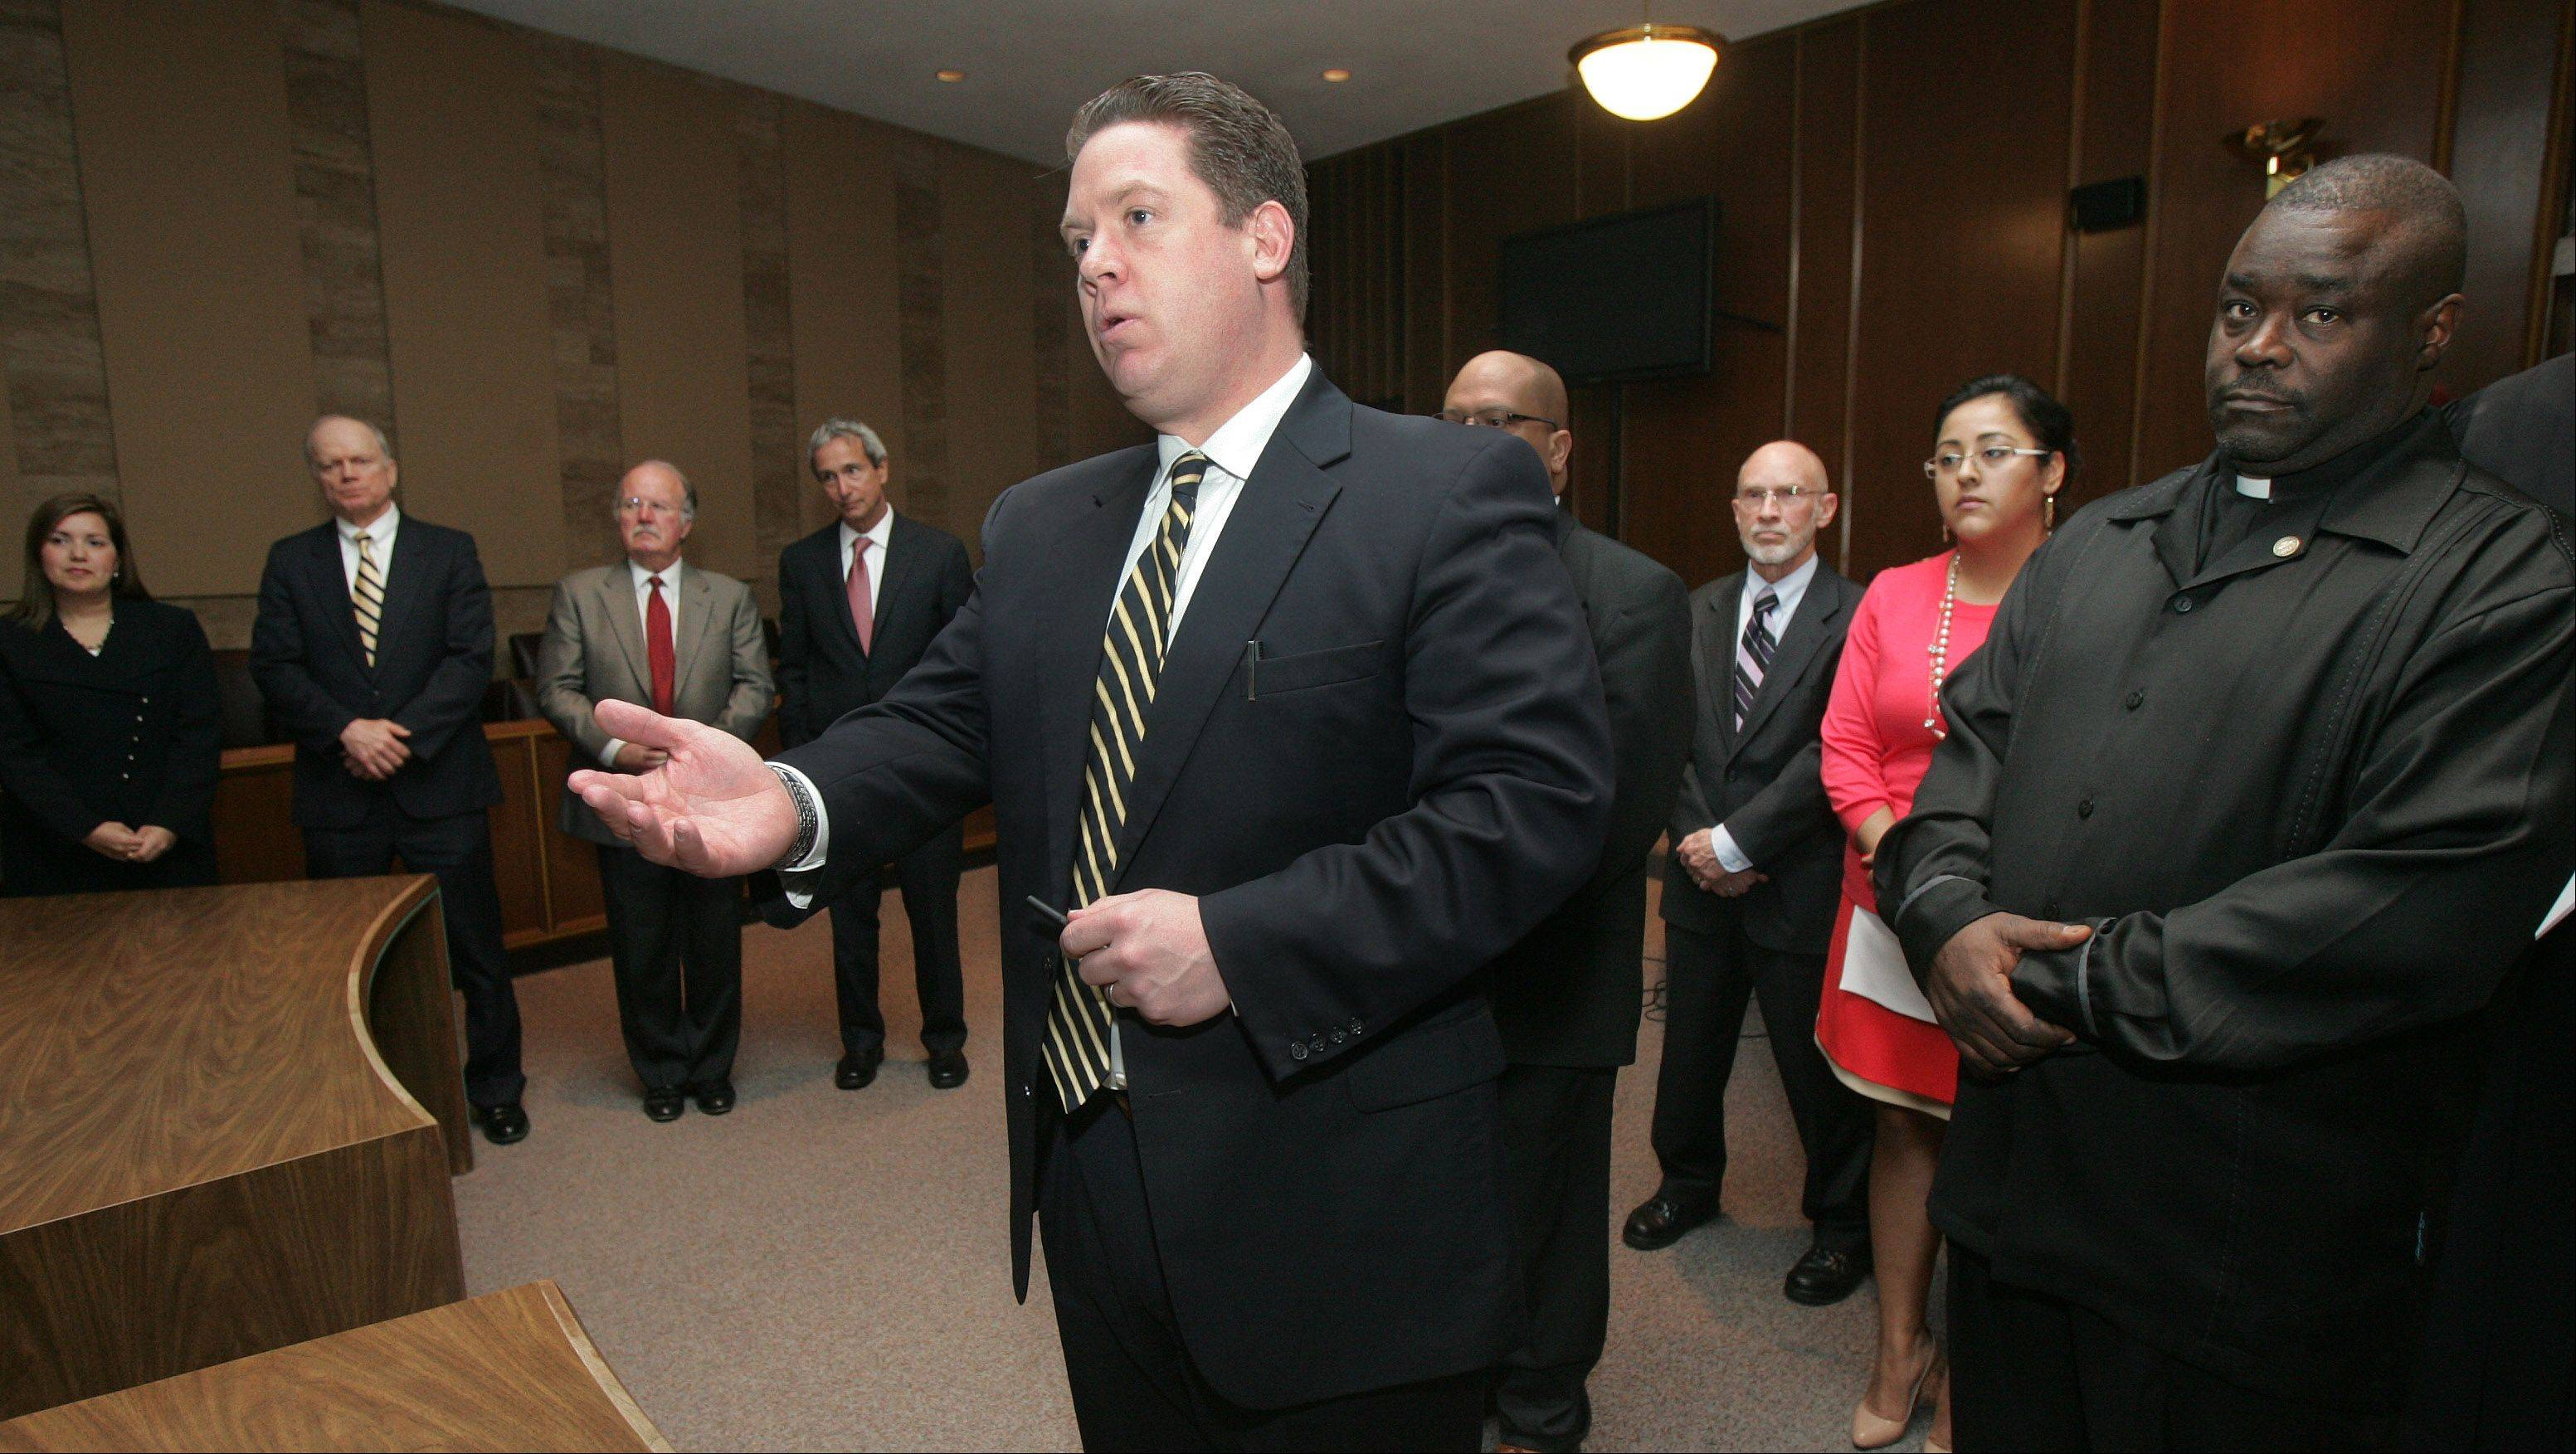 Lake County State's Attorney Mike Nerheim swore-in the all-volunteer Case Review Board and the Citizens Advisory Board Thursday at the Lake County Courthouse in Waukegan. The Board is independent of the Assistant State's Attorney's office and will review cases and make recommendations.